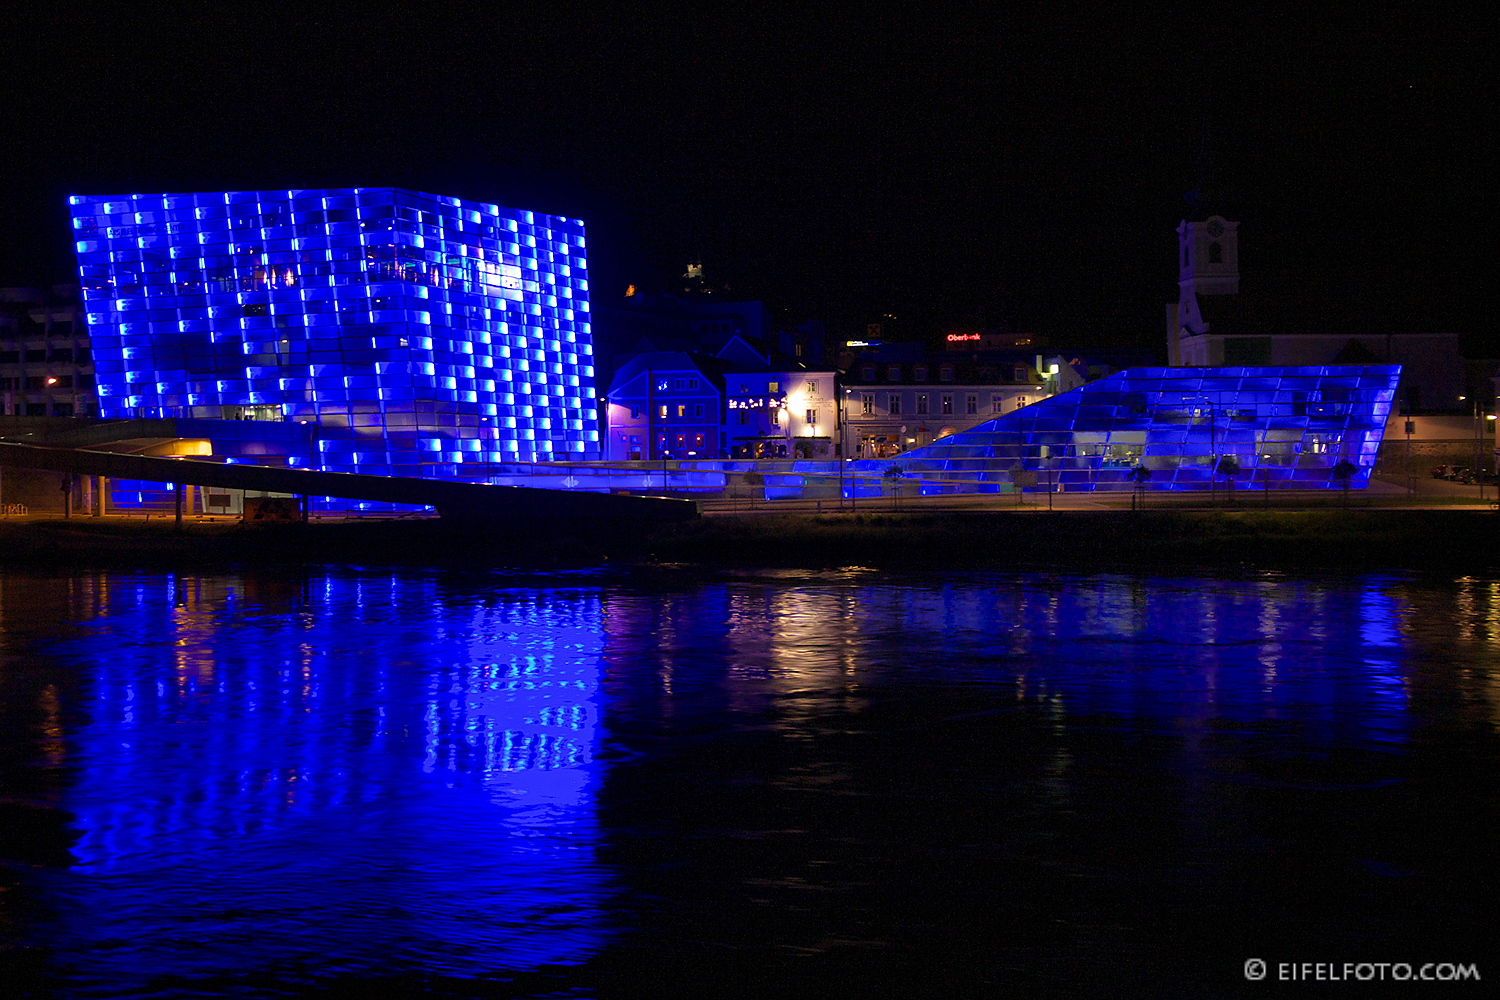 Ars Electronica Center Linz, Donau